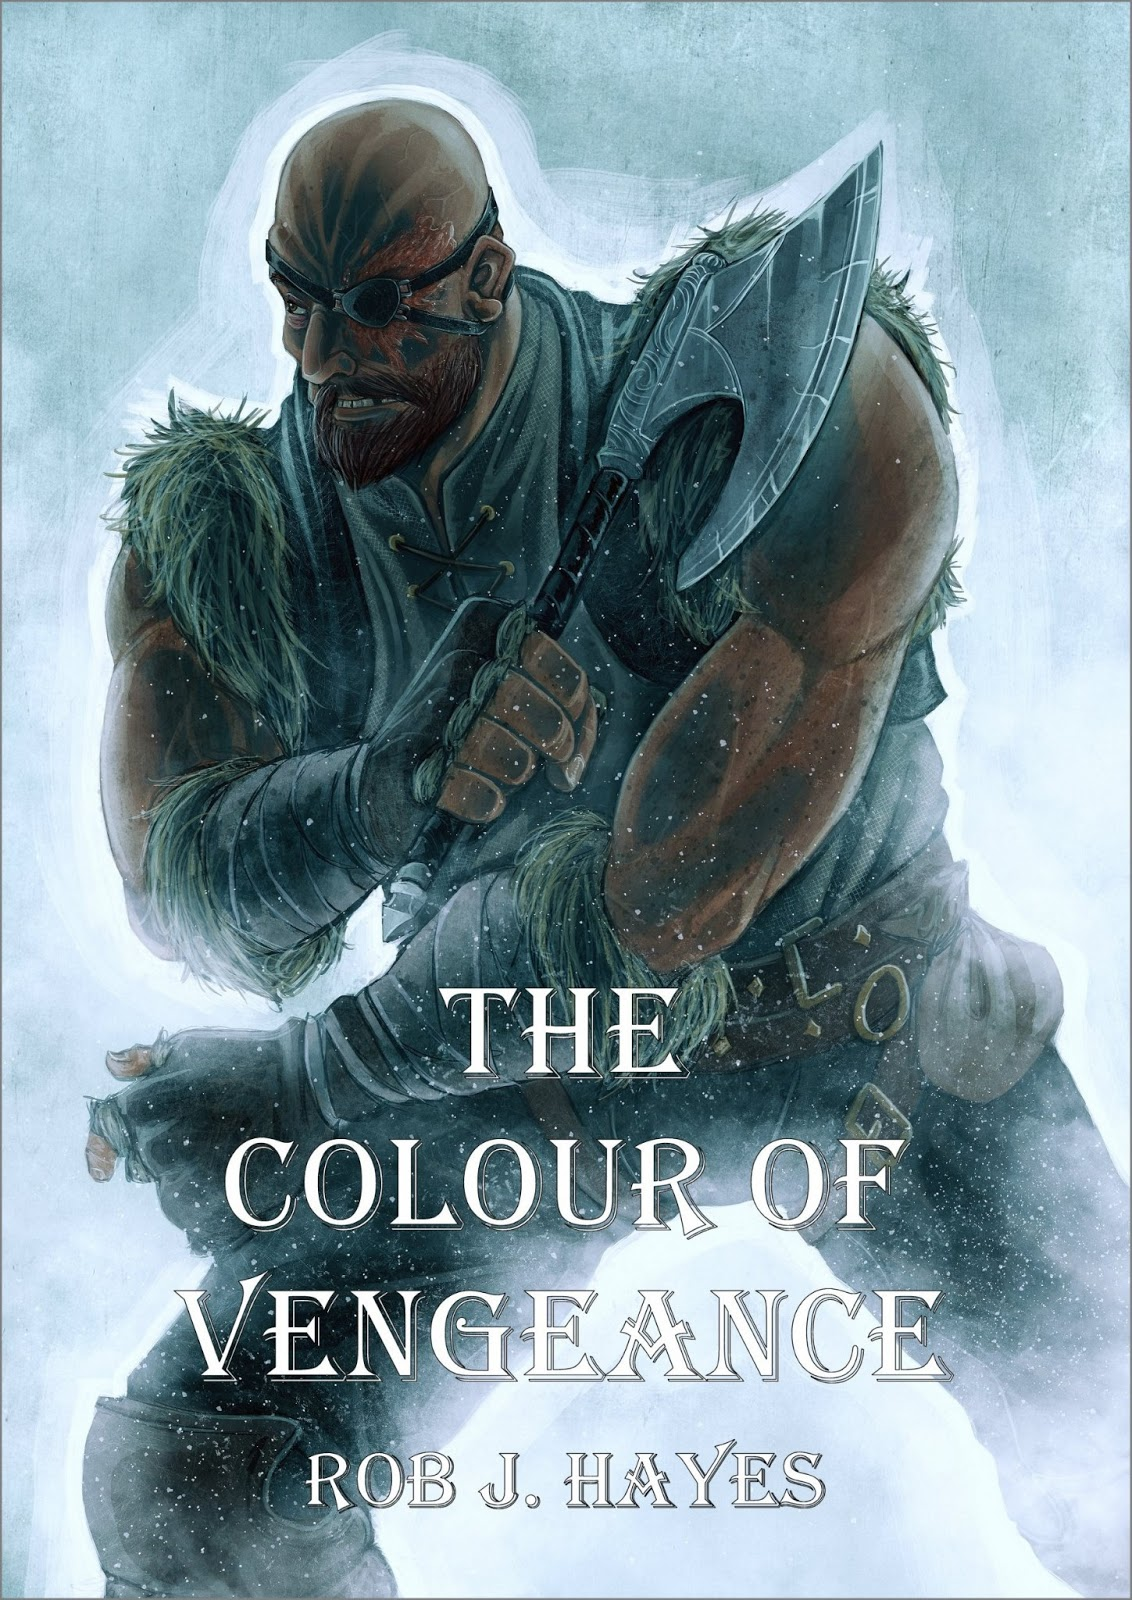 Fantasy book critic the colour of vengeance by rob j hayes the colour of vengeance by rob j hayes reviewed by mihir wanchoo fandeluxe Document